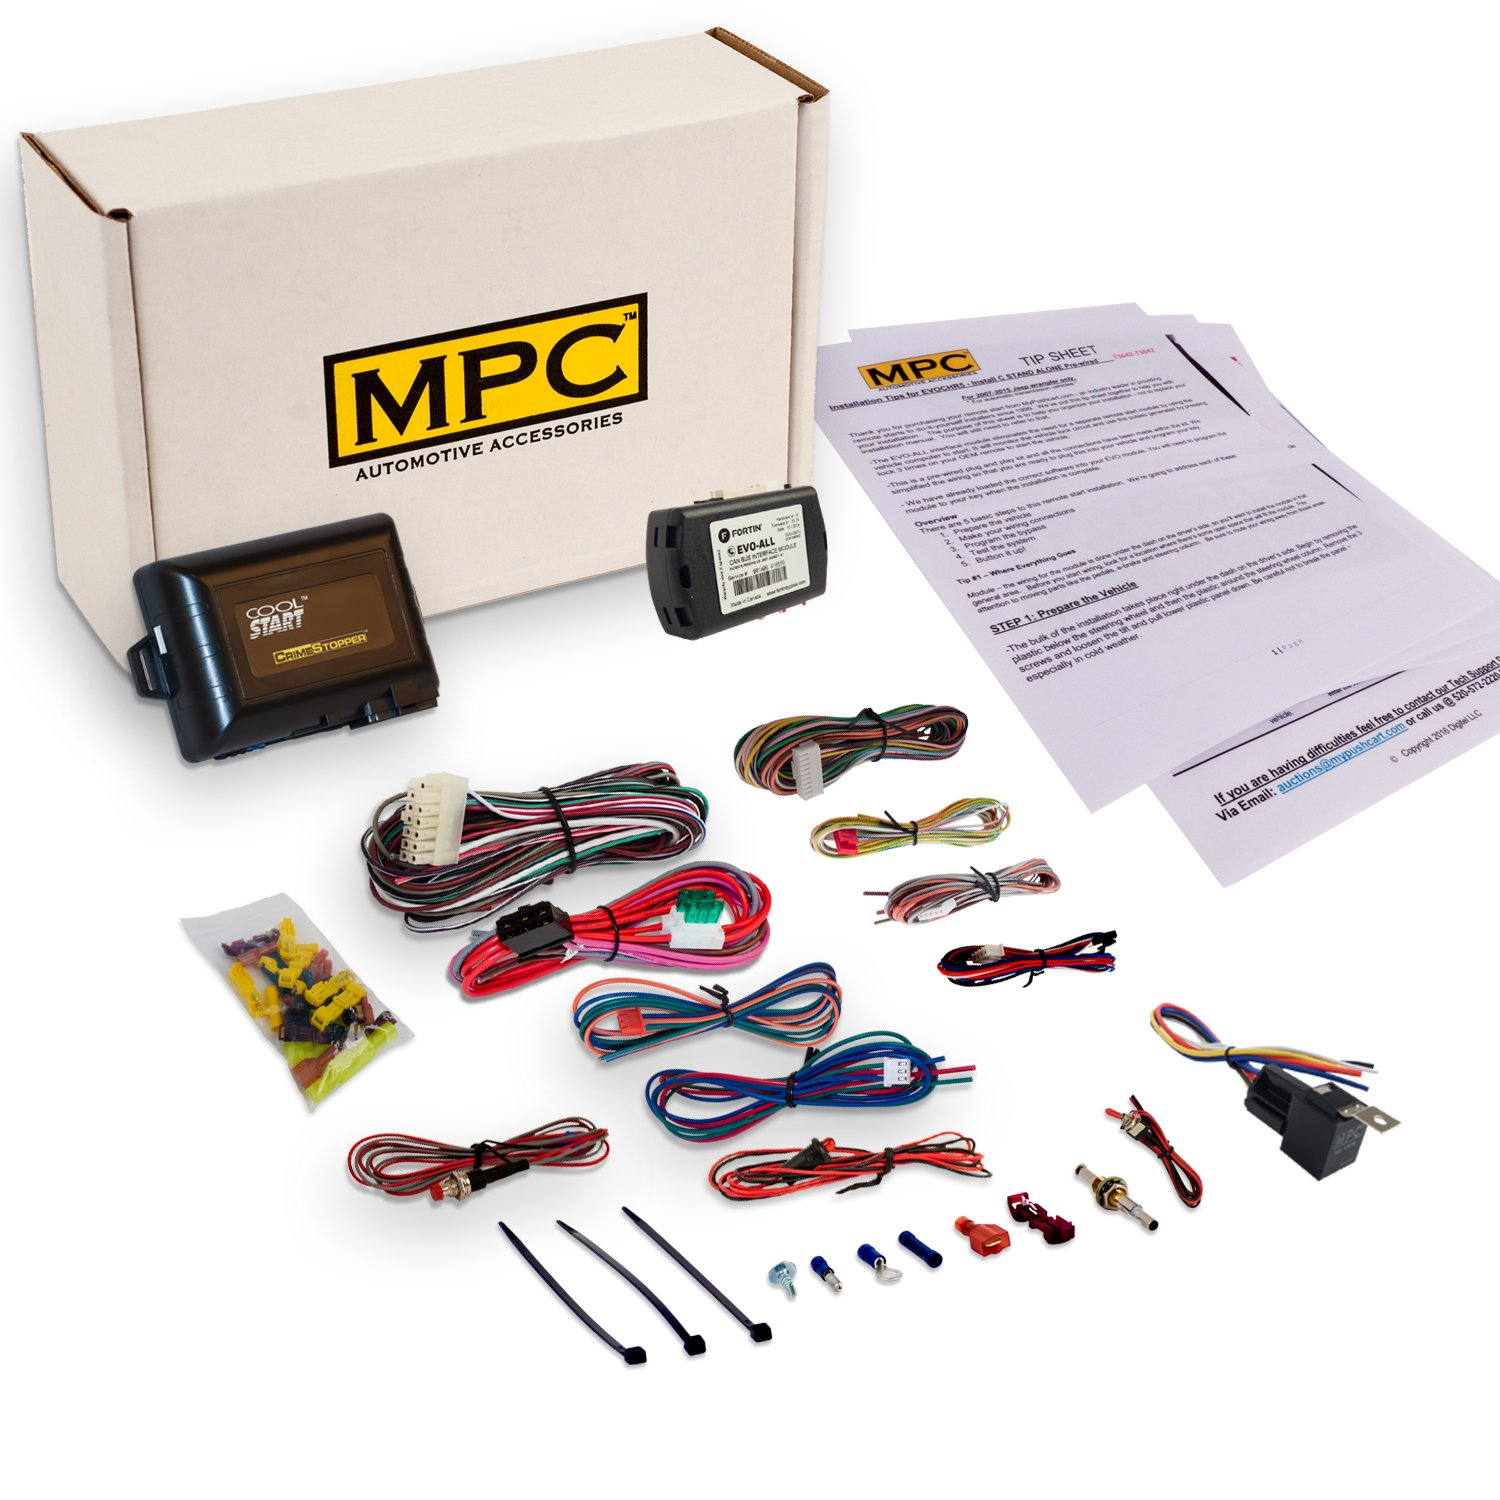 MPC Complete Remote Start Kit for 2017-2018 Hyundai Sante Fe - Use Factory Remotes - Firmware Preloaded